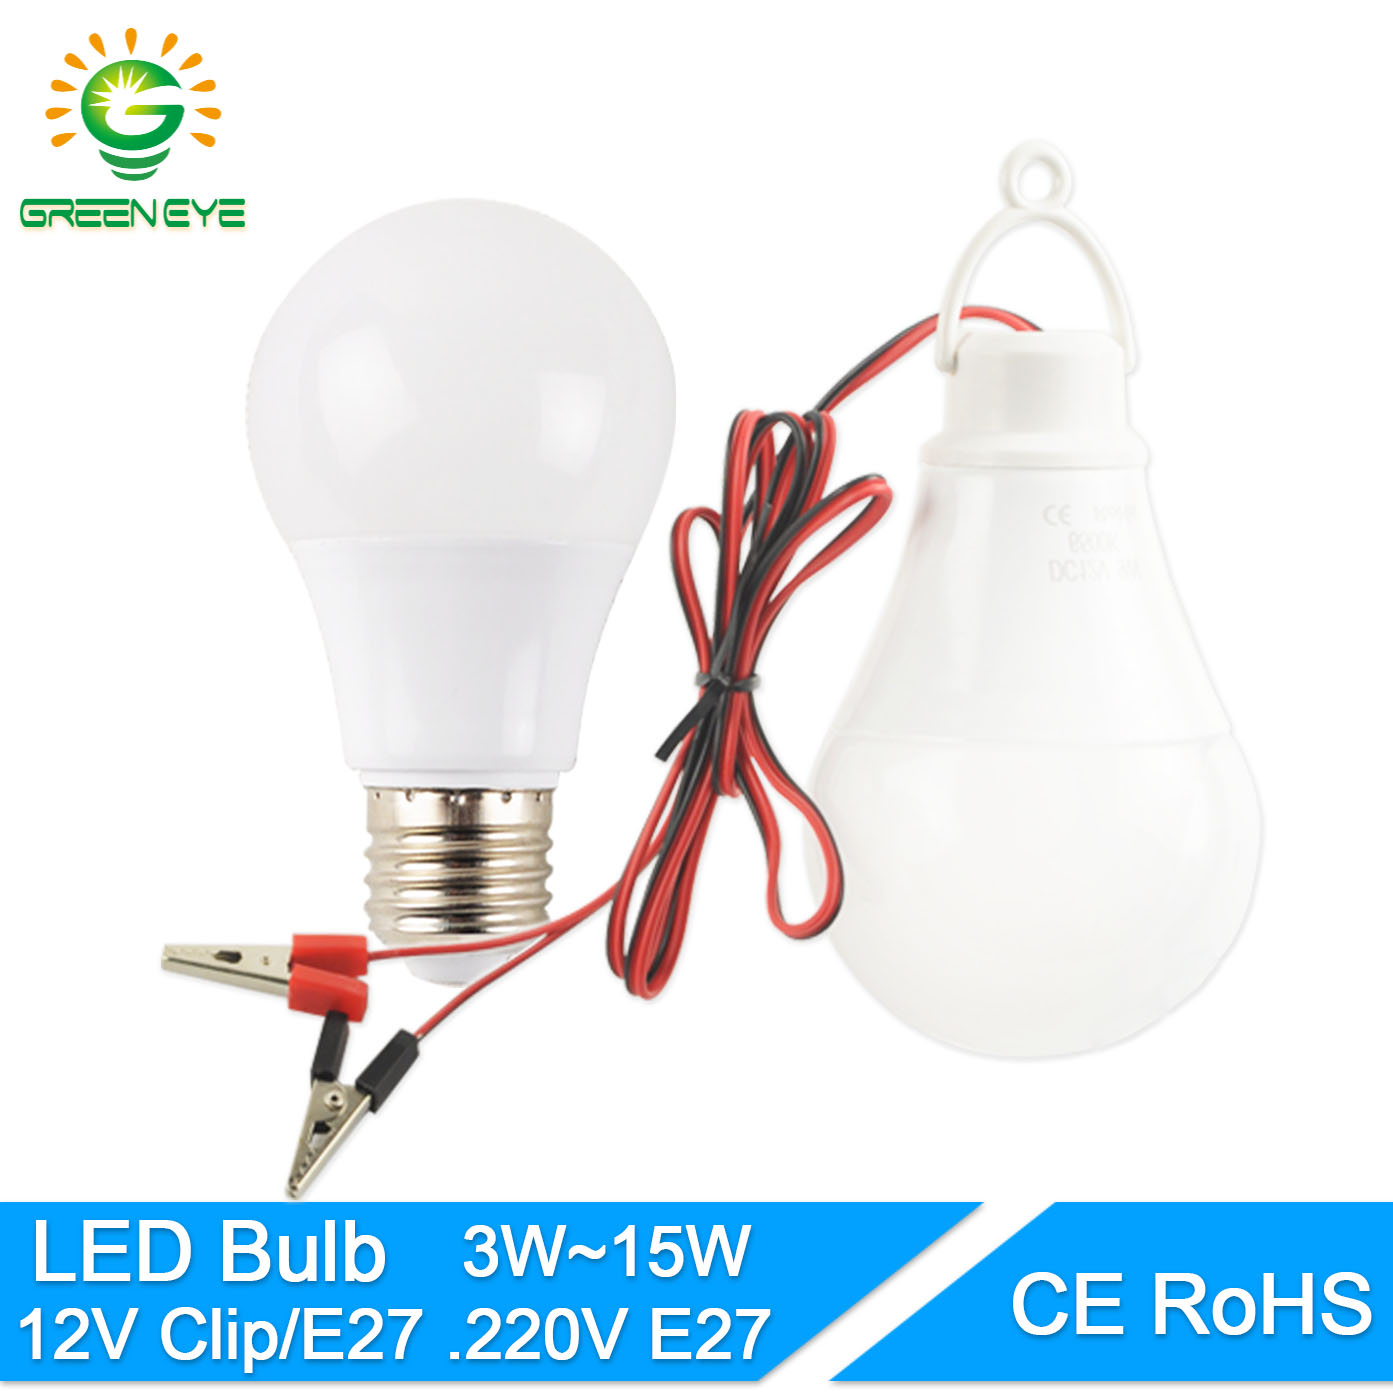 GreenEye Cable E27 DC 12V LED Bulb 3W 5W 7W 9W 12W 15W LED Lamp For Outdoor Camping Hunting Emergency Night Fishing